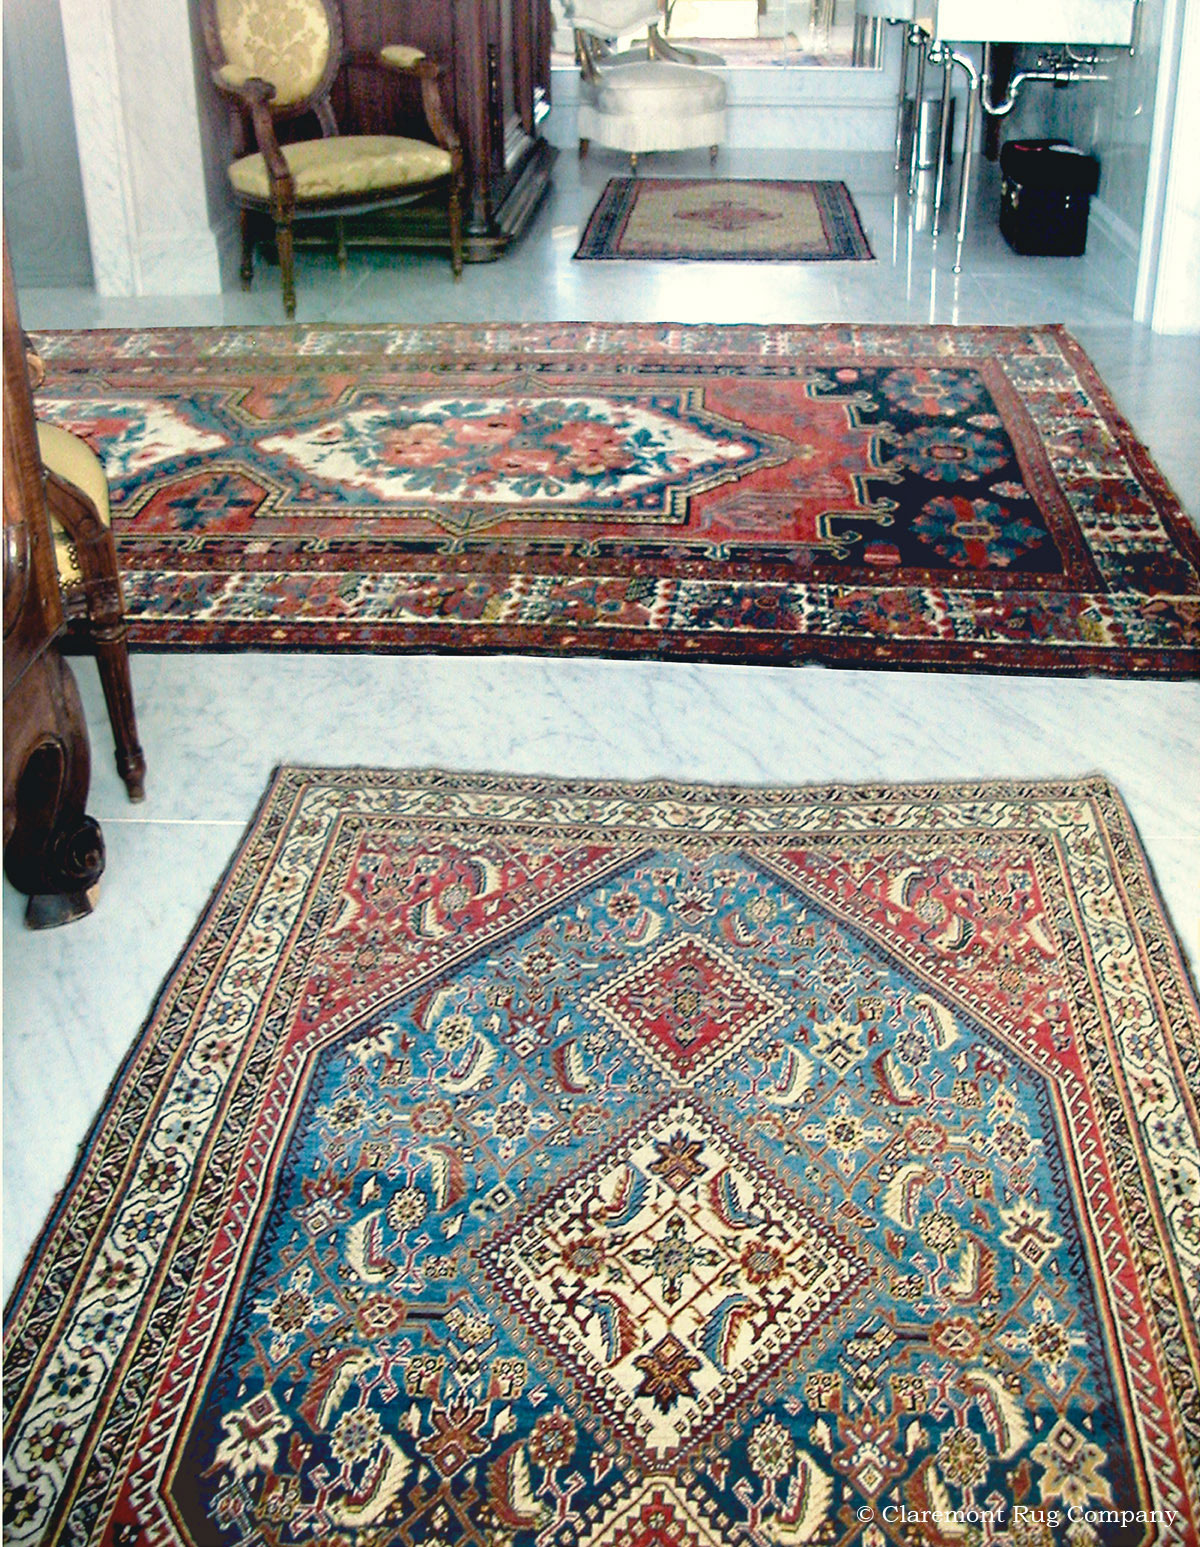 Remarkable century old tribal rugs bring traditional for Master bathroom rugs